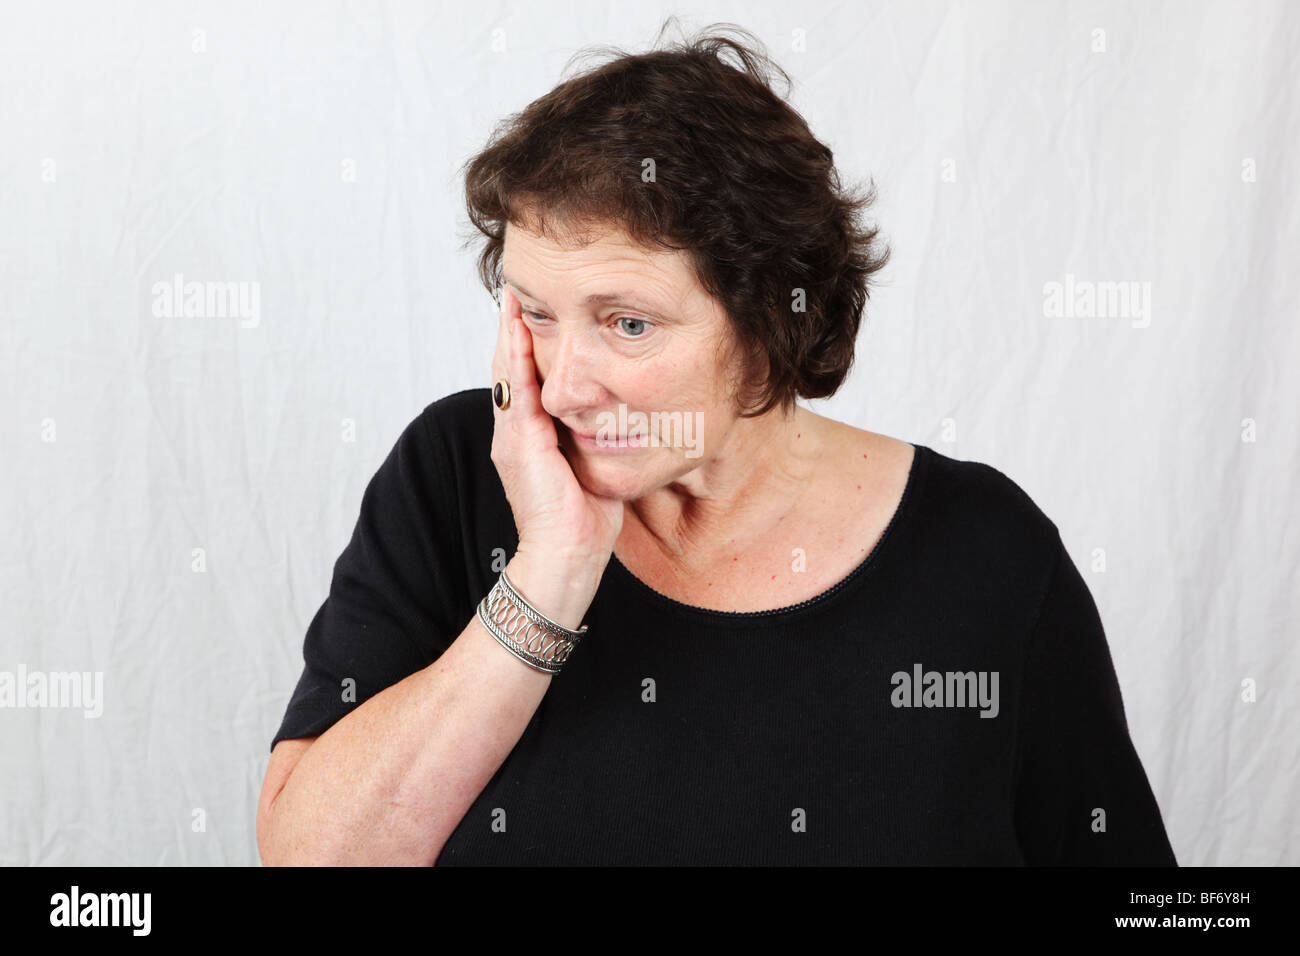 50s 60s woman looking anxious nervous apprehensive distressed disturbed  worried uneasy restless unsettled - Stock Image